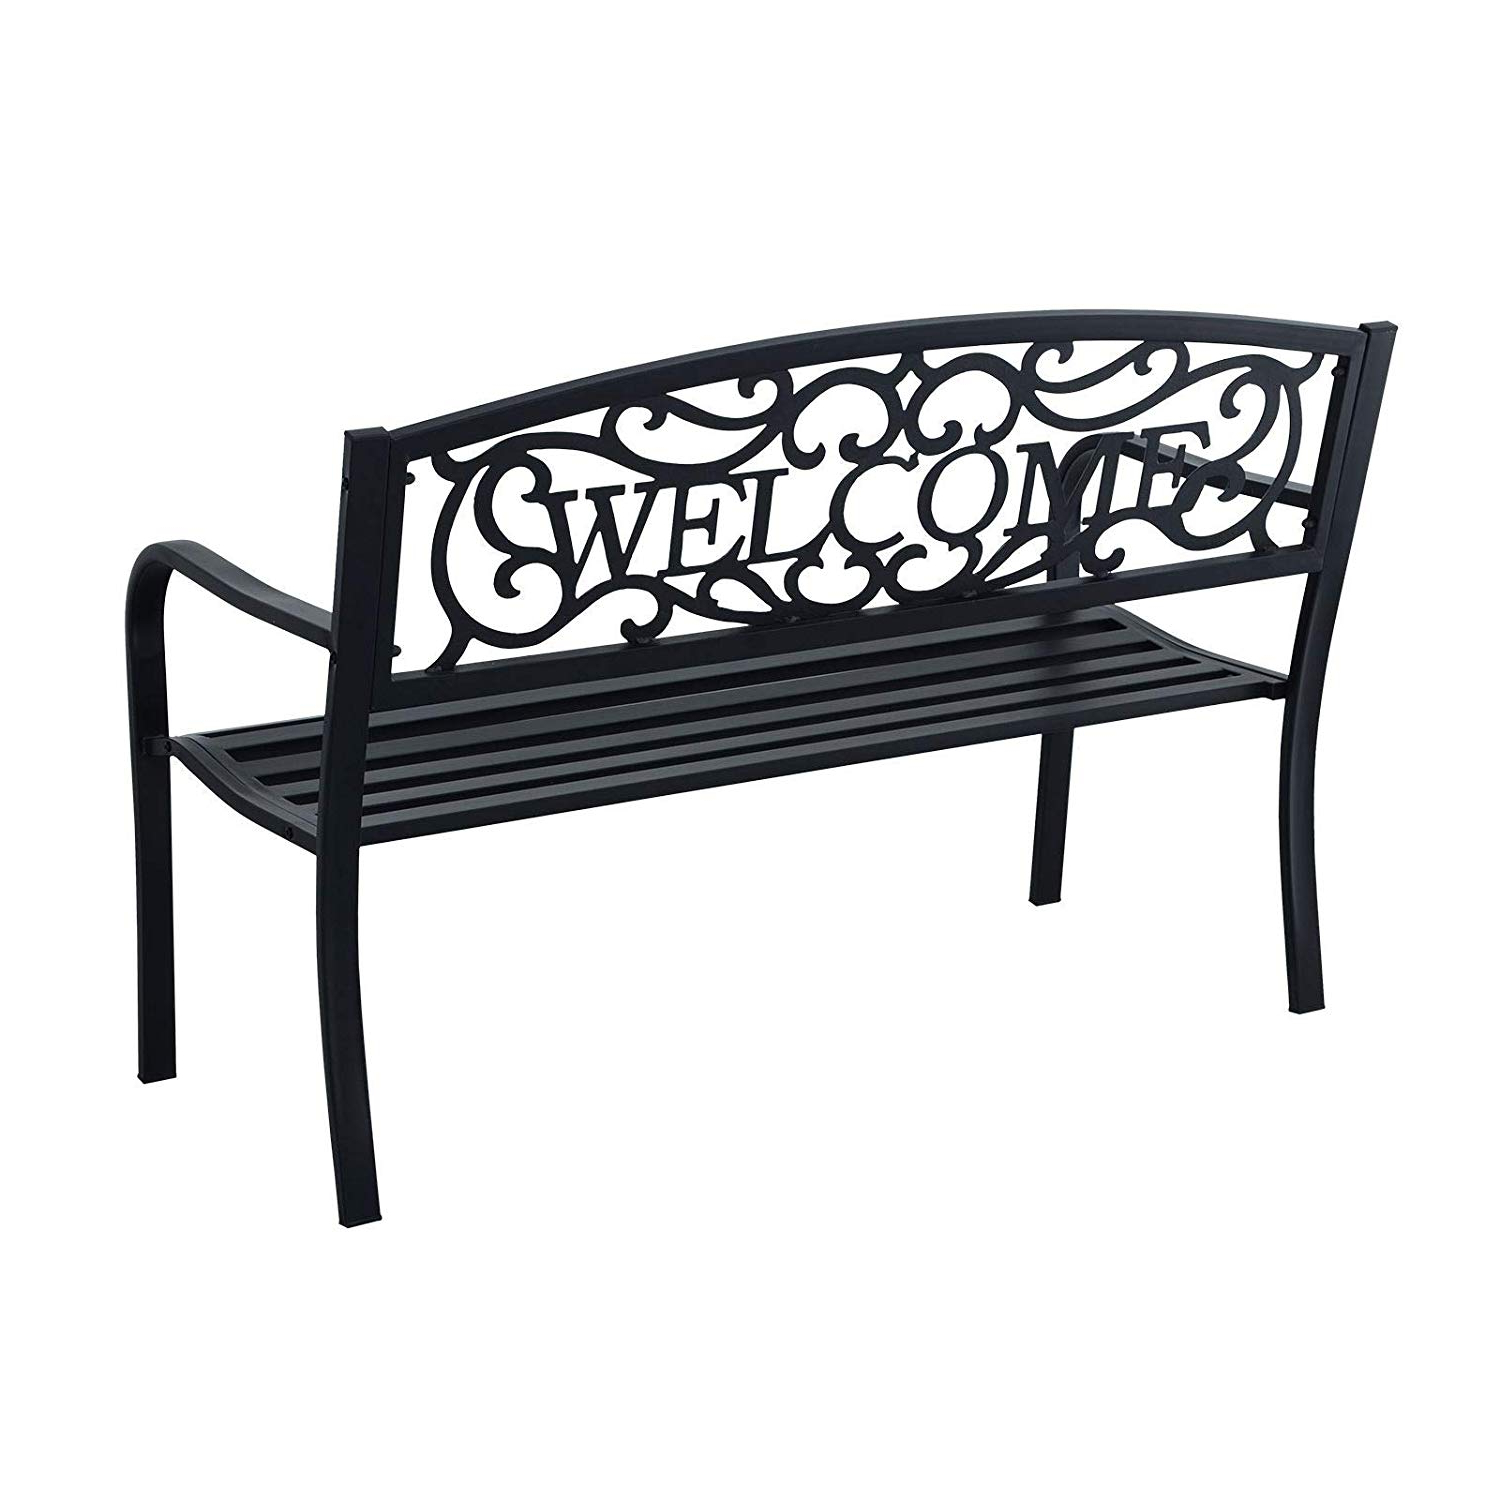 Iron Grove Slatted Glider Benches Throughout Current Azuma Welcome Bench Garden Furniture 2 Seater Outdoor Chair Seat Black Steel Seating With Message Backrest For Patio Conservatory Decking Deck Park (View 27 of 30)